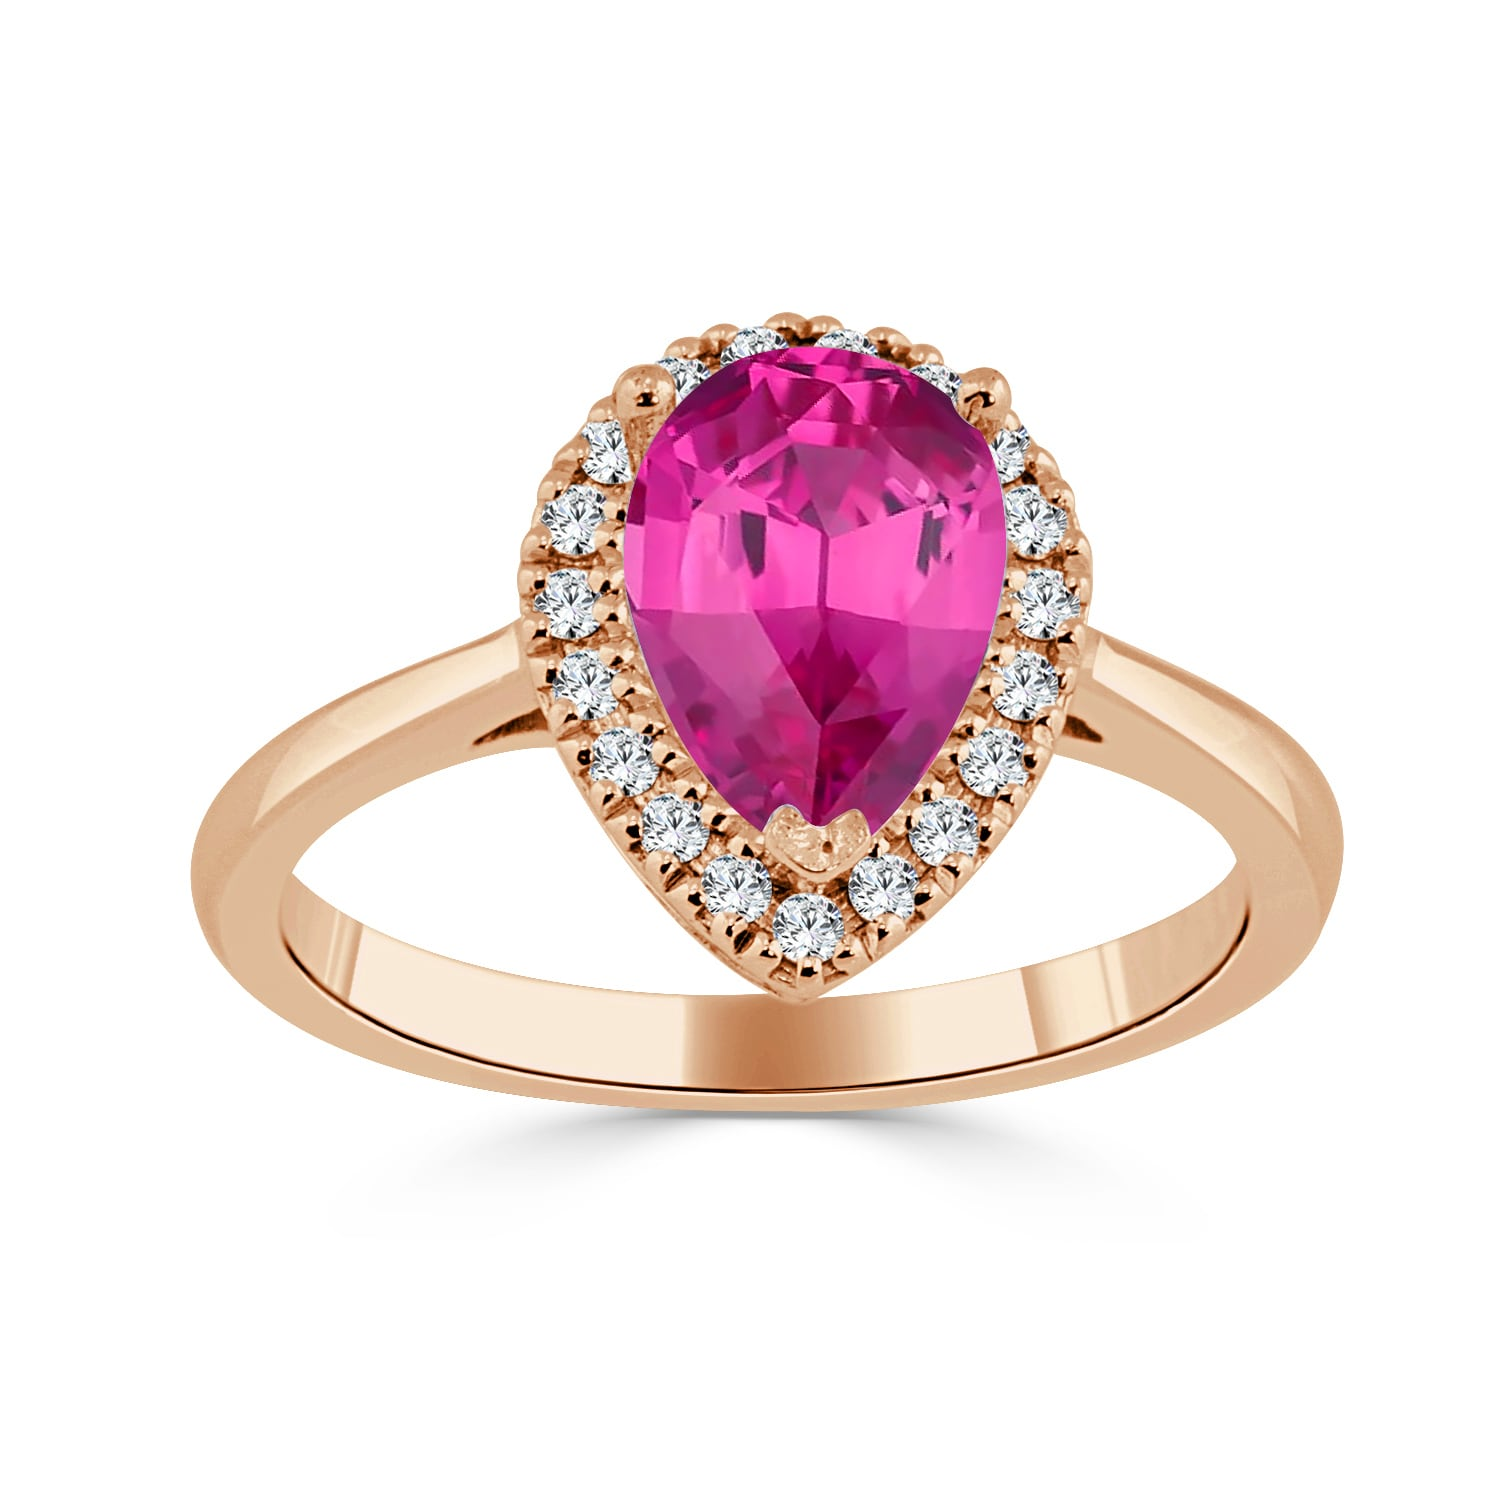 Shop Auriya 14k Gold 1 1/2ct Pear-Shaped Pink Sapphire and 1/6ct TDW ...